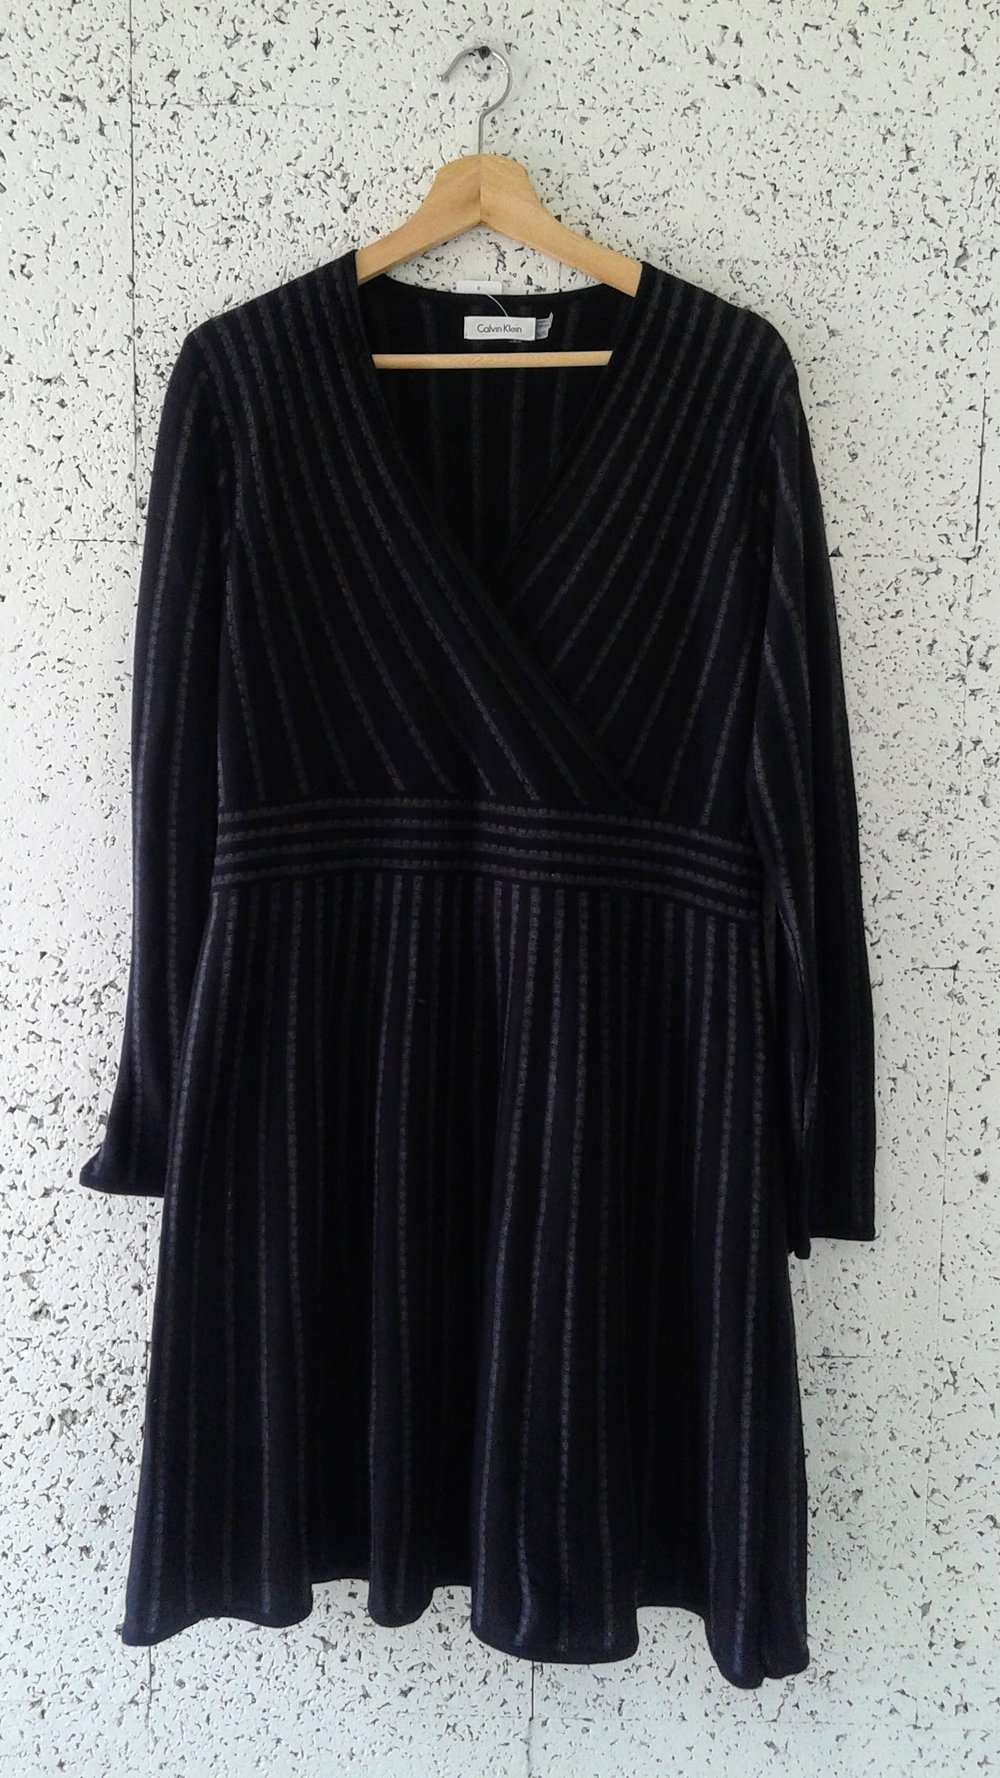 Calvin Klein dress; Size XL, $42